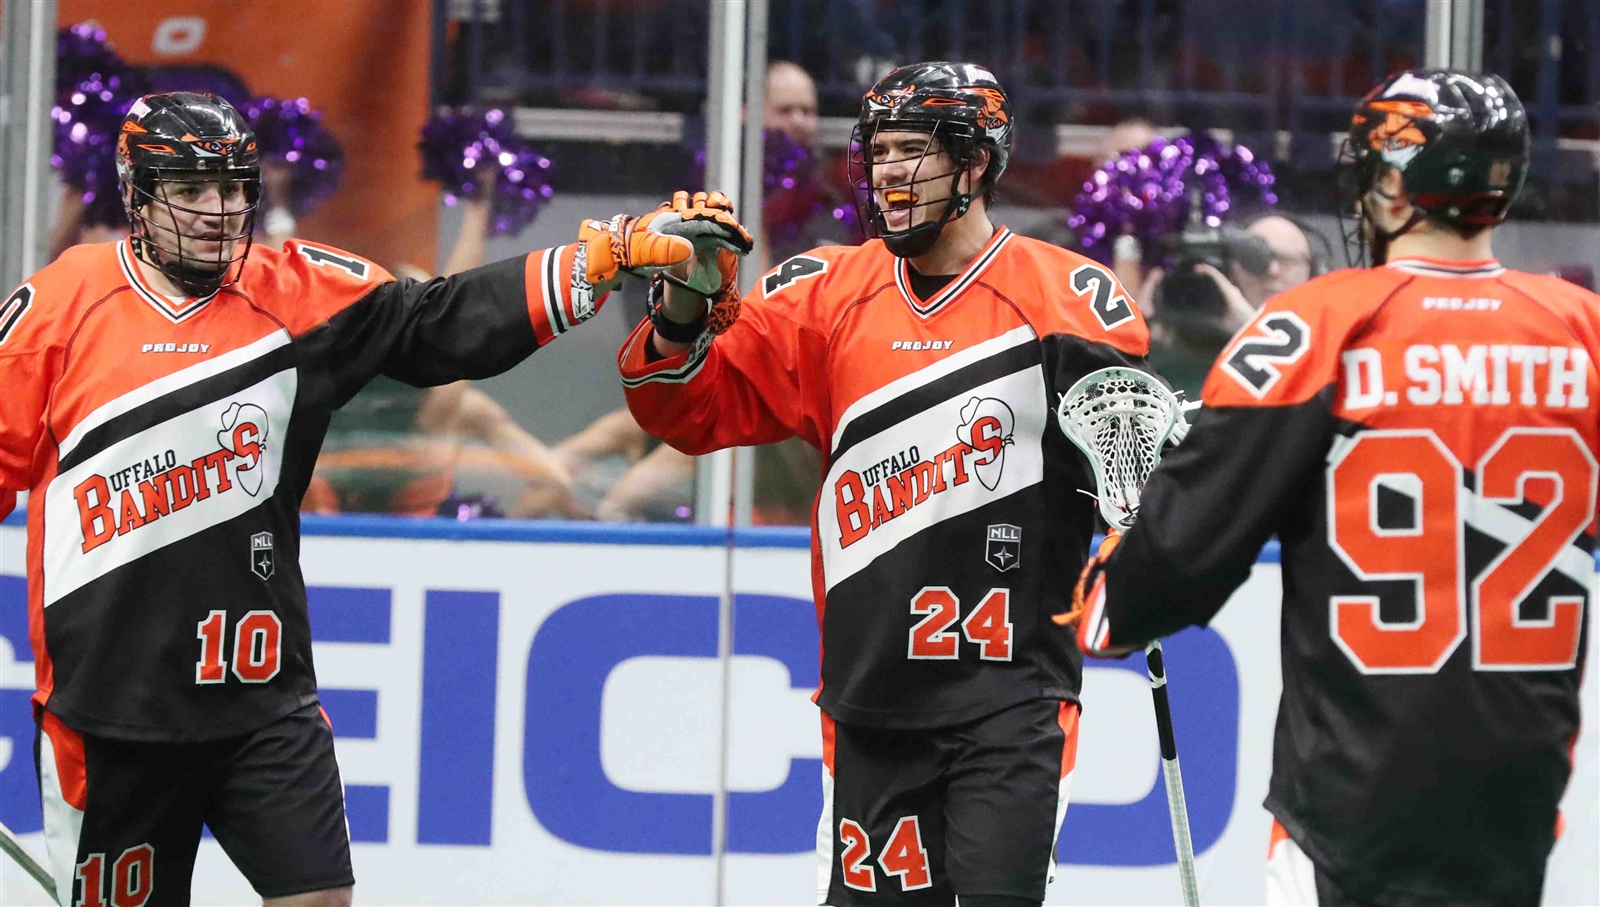 Mitch Jones (24) hopes to continue his flurry of goals this weekend for the Bandits. (Photo by James P. McCoy / Buffalo News)